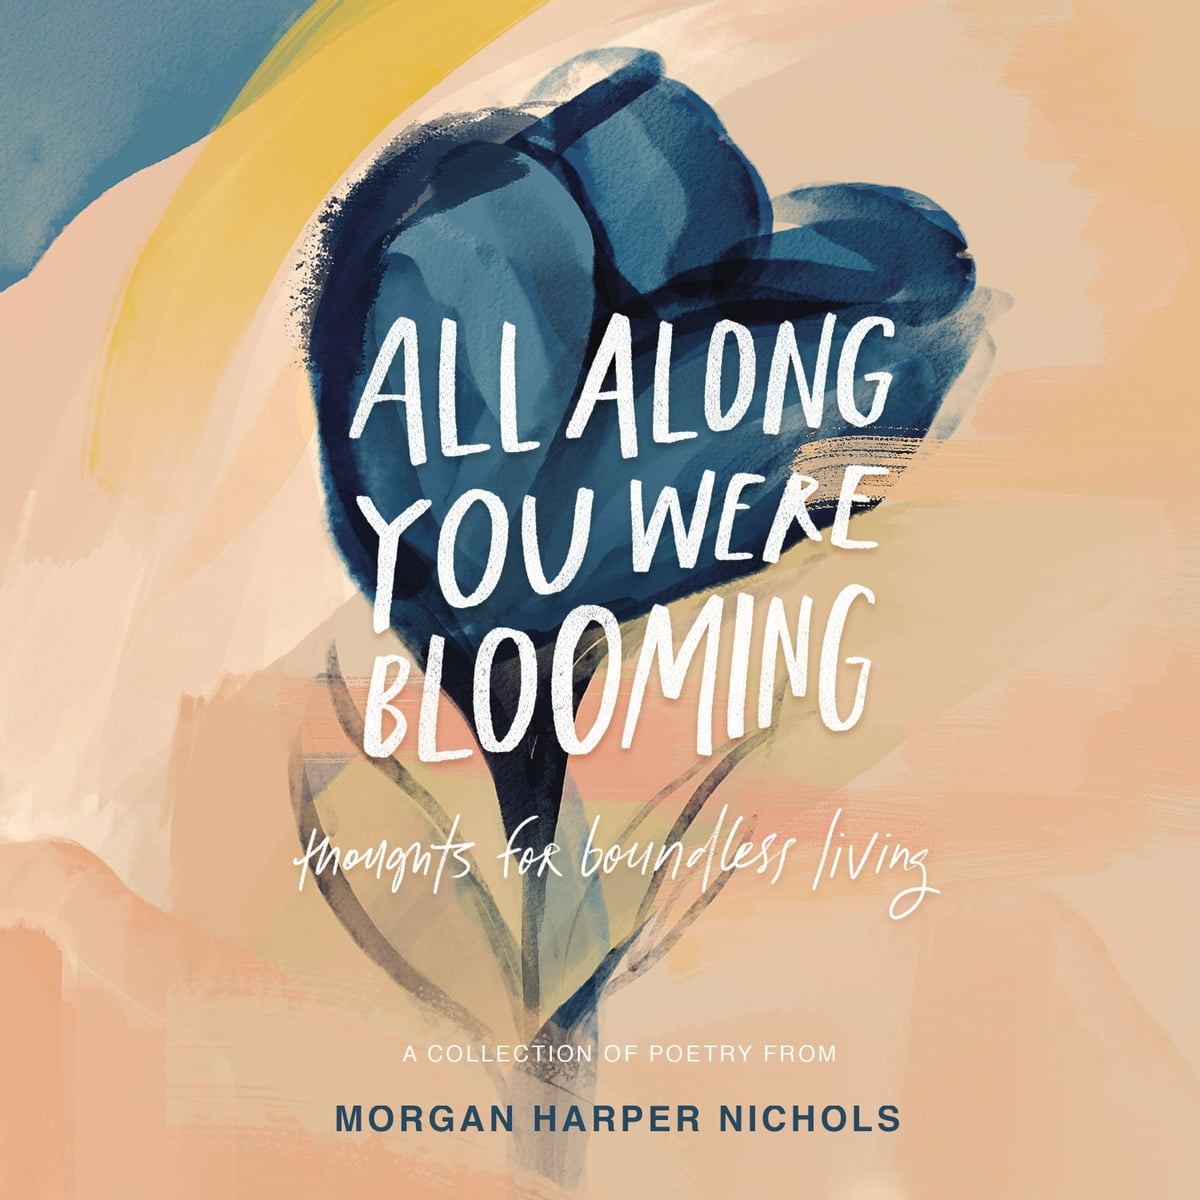 All Along You Were Blooming Audiobook by Morgan Harper Nichols -  9780310456568 | Rakuten Kobo United States